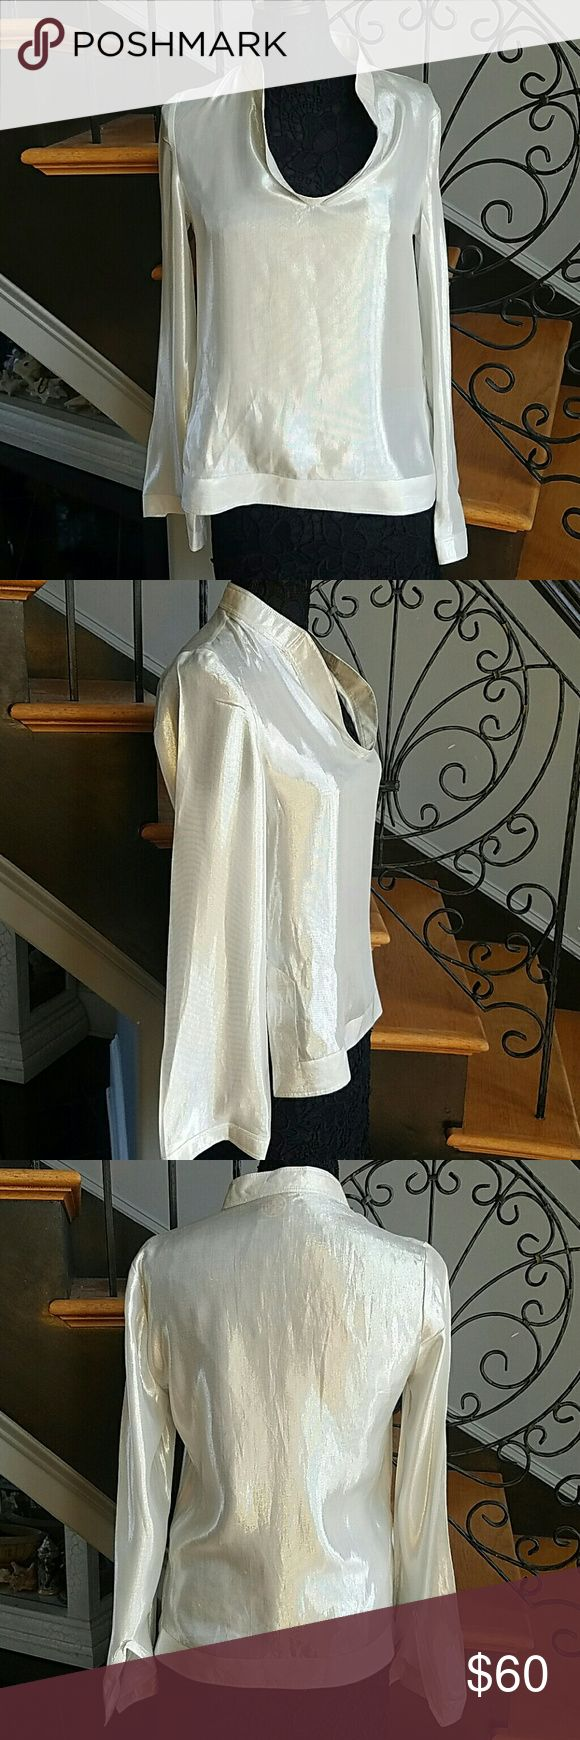 Tory Burch Top EUC Silk metallic blouse  No size info labled, however, I wear a 6 and it fits great.  The mannequin is a 4. Tory Burch Tops